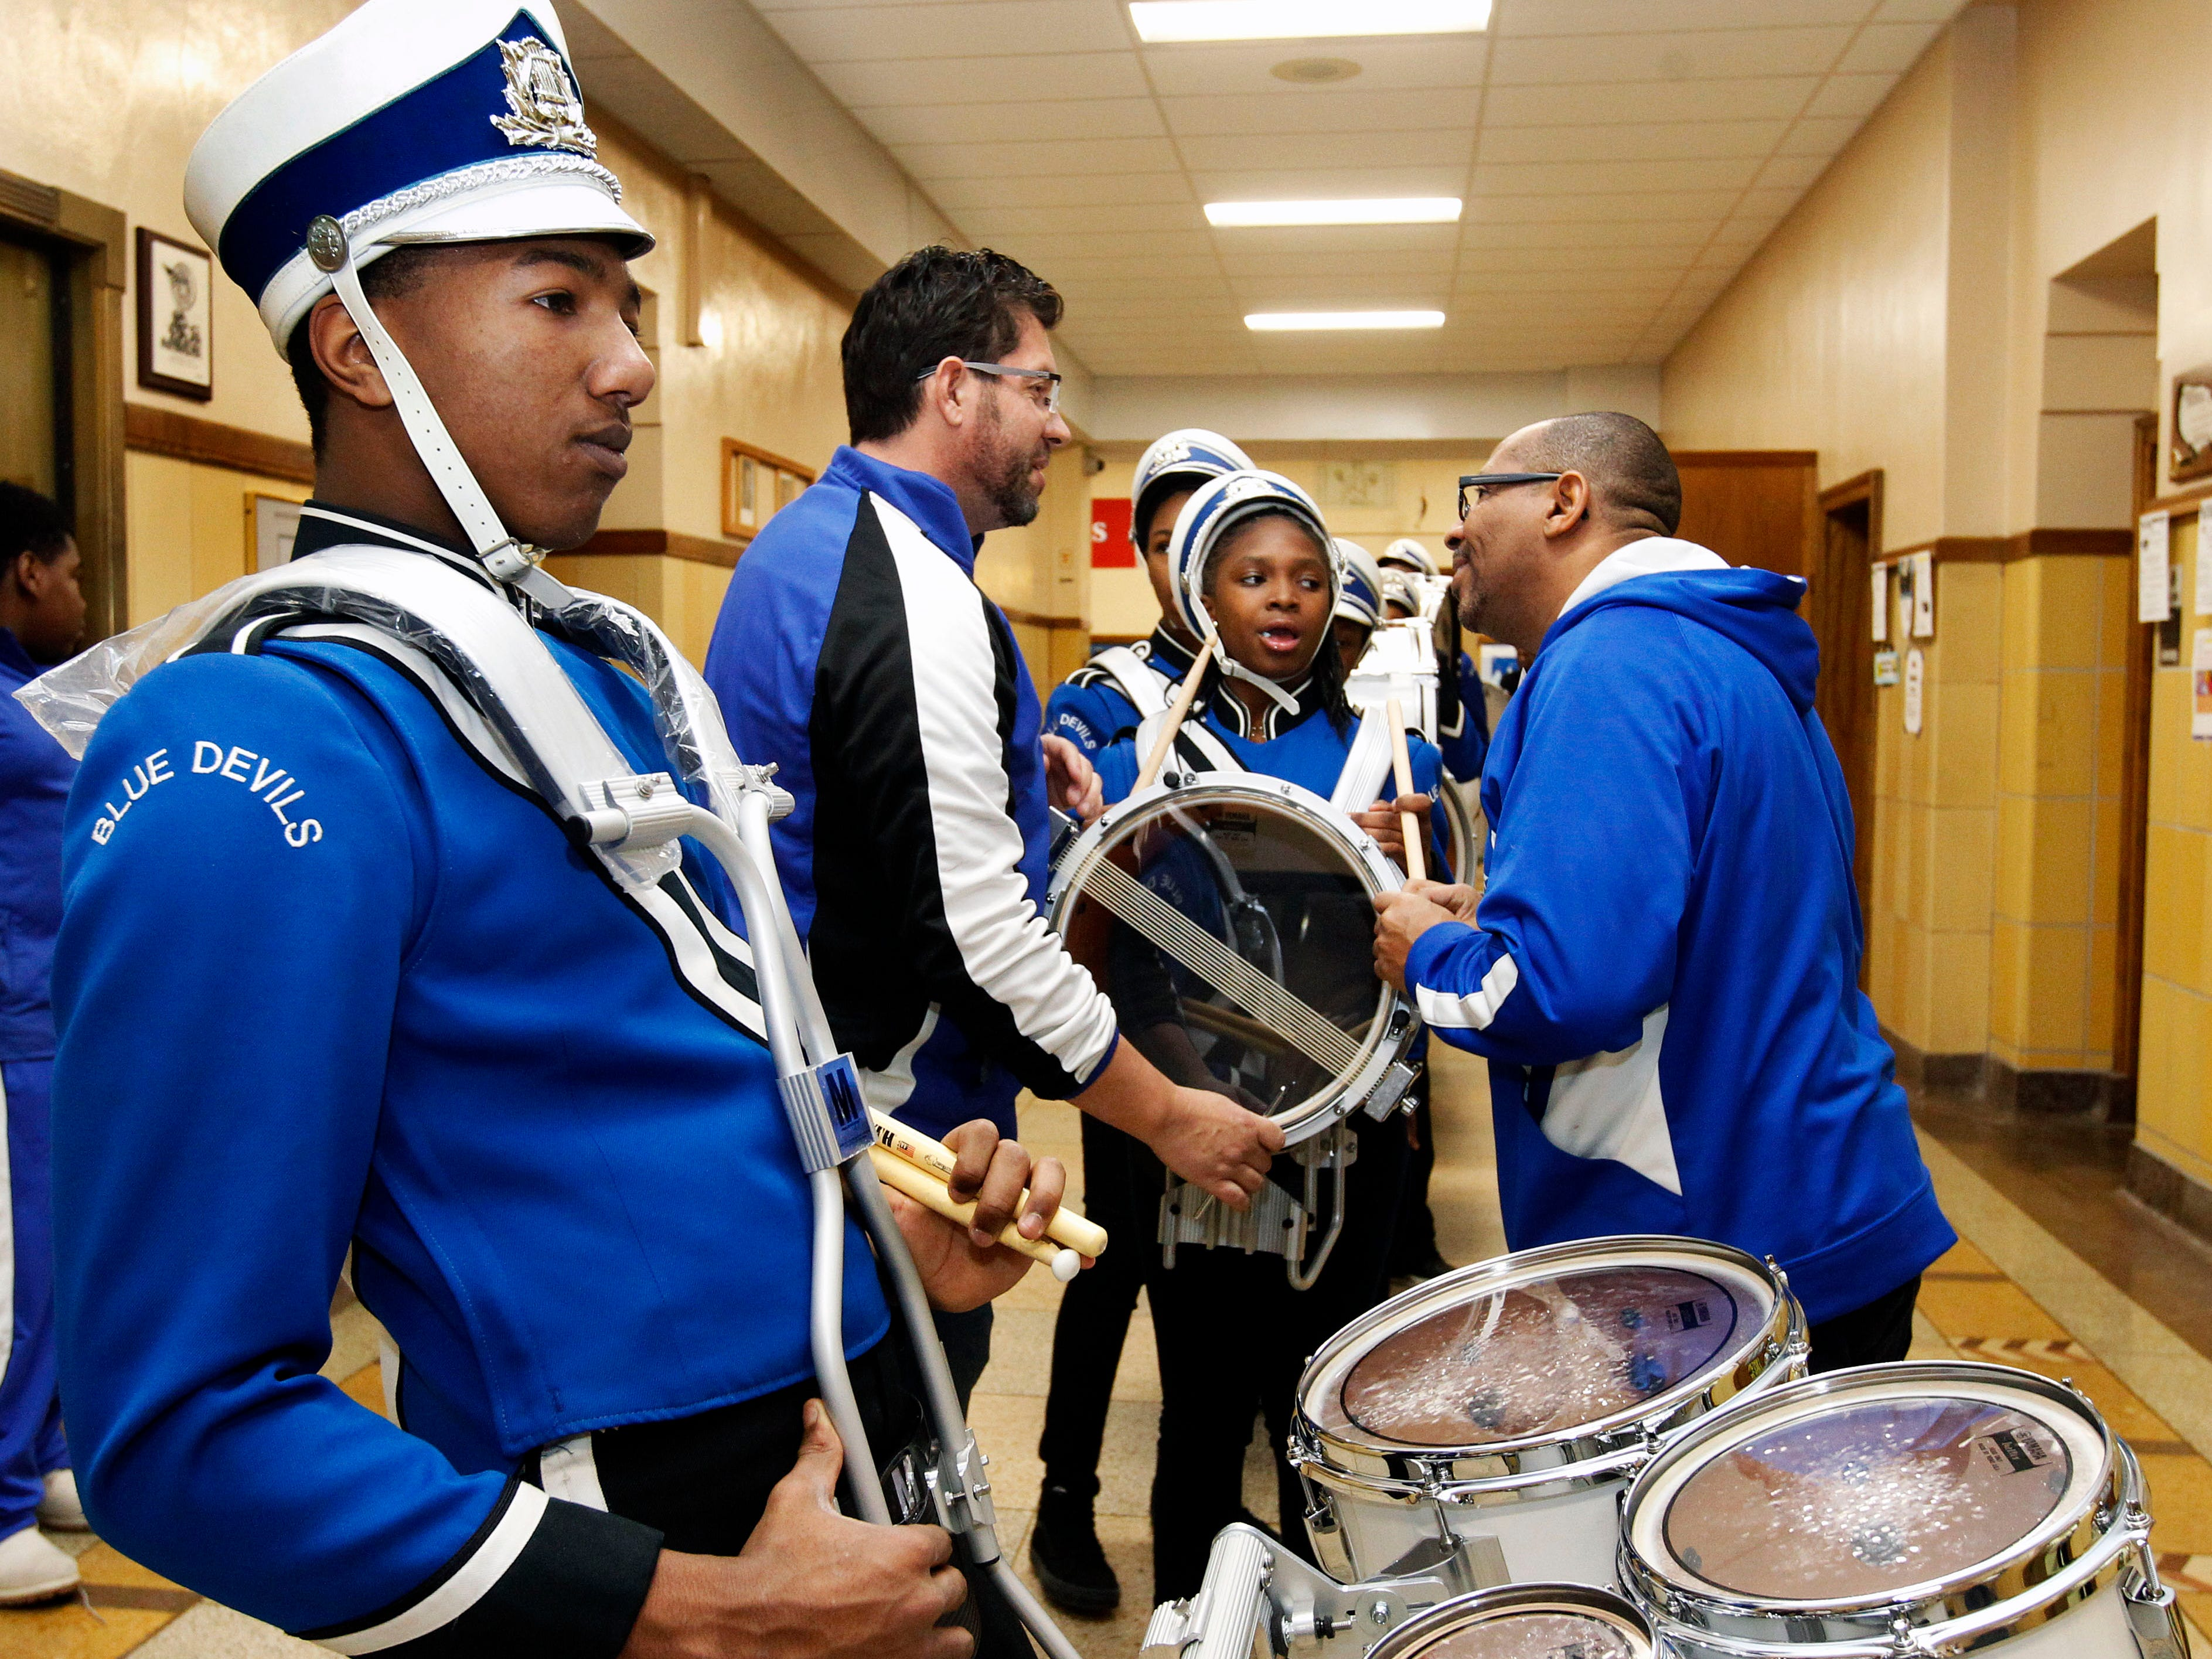 Maleak Taylor, a freshmen at North Divison High School, who plays quints for the drumline at Rufus King High School, waits for the band competition to begin at the MPS Hosts City Drumline Competition on Saturday, Dec. 8, 2018. In the background are co-directors of the North Division High School Drumline, left Paul Braun and Andre Torrence (cq).